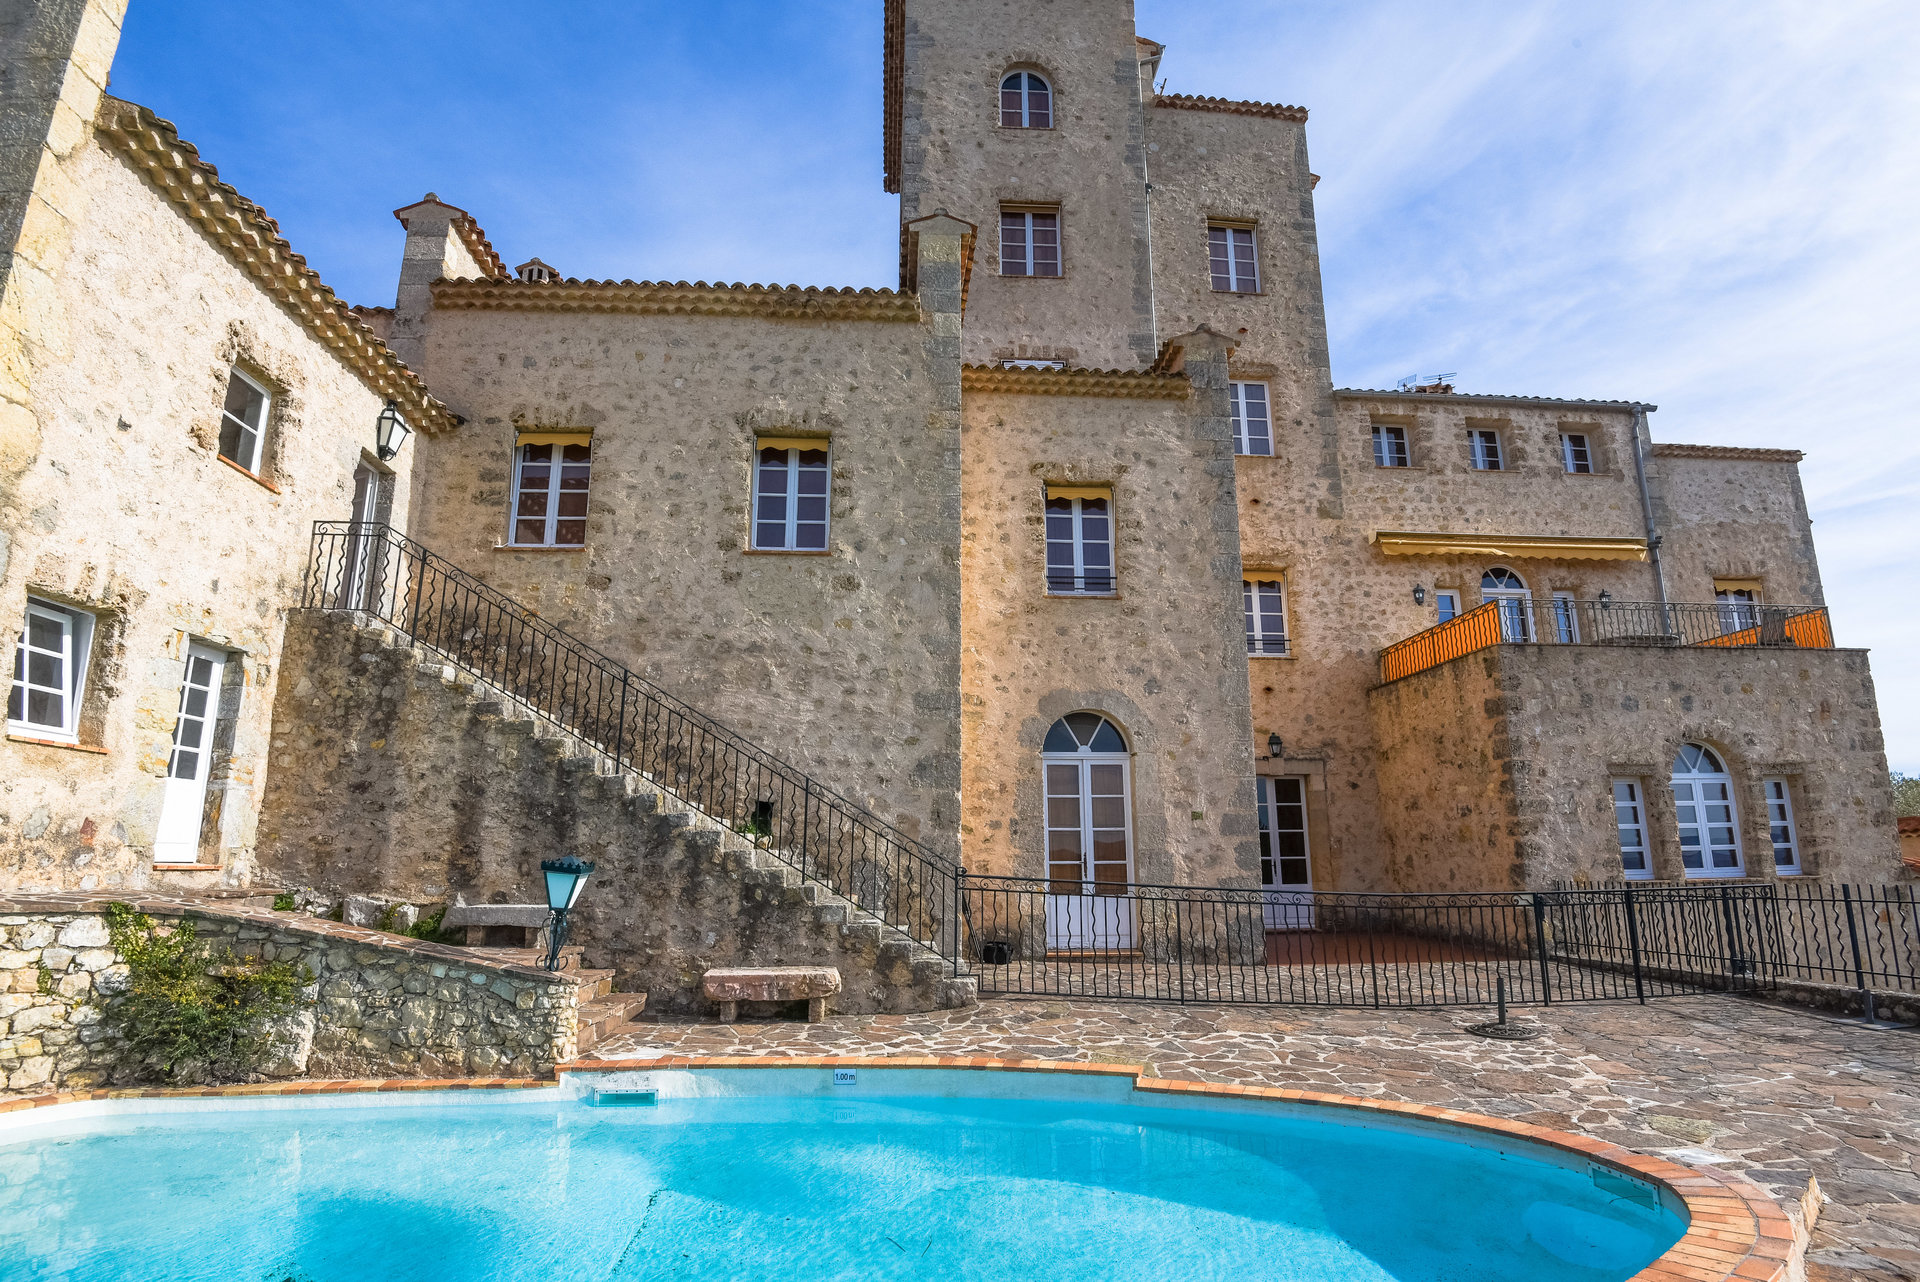 Tourrettes/Fayence: apartement in kasteel